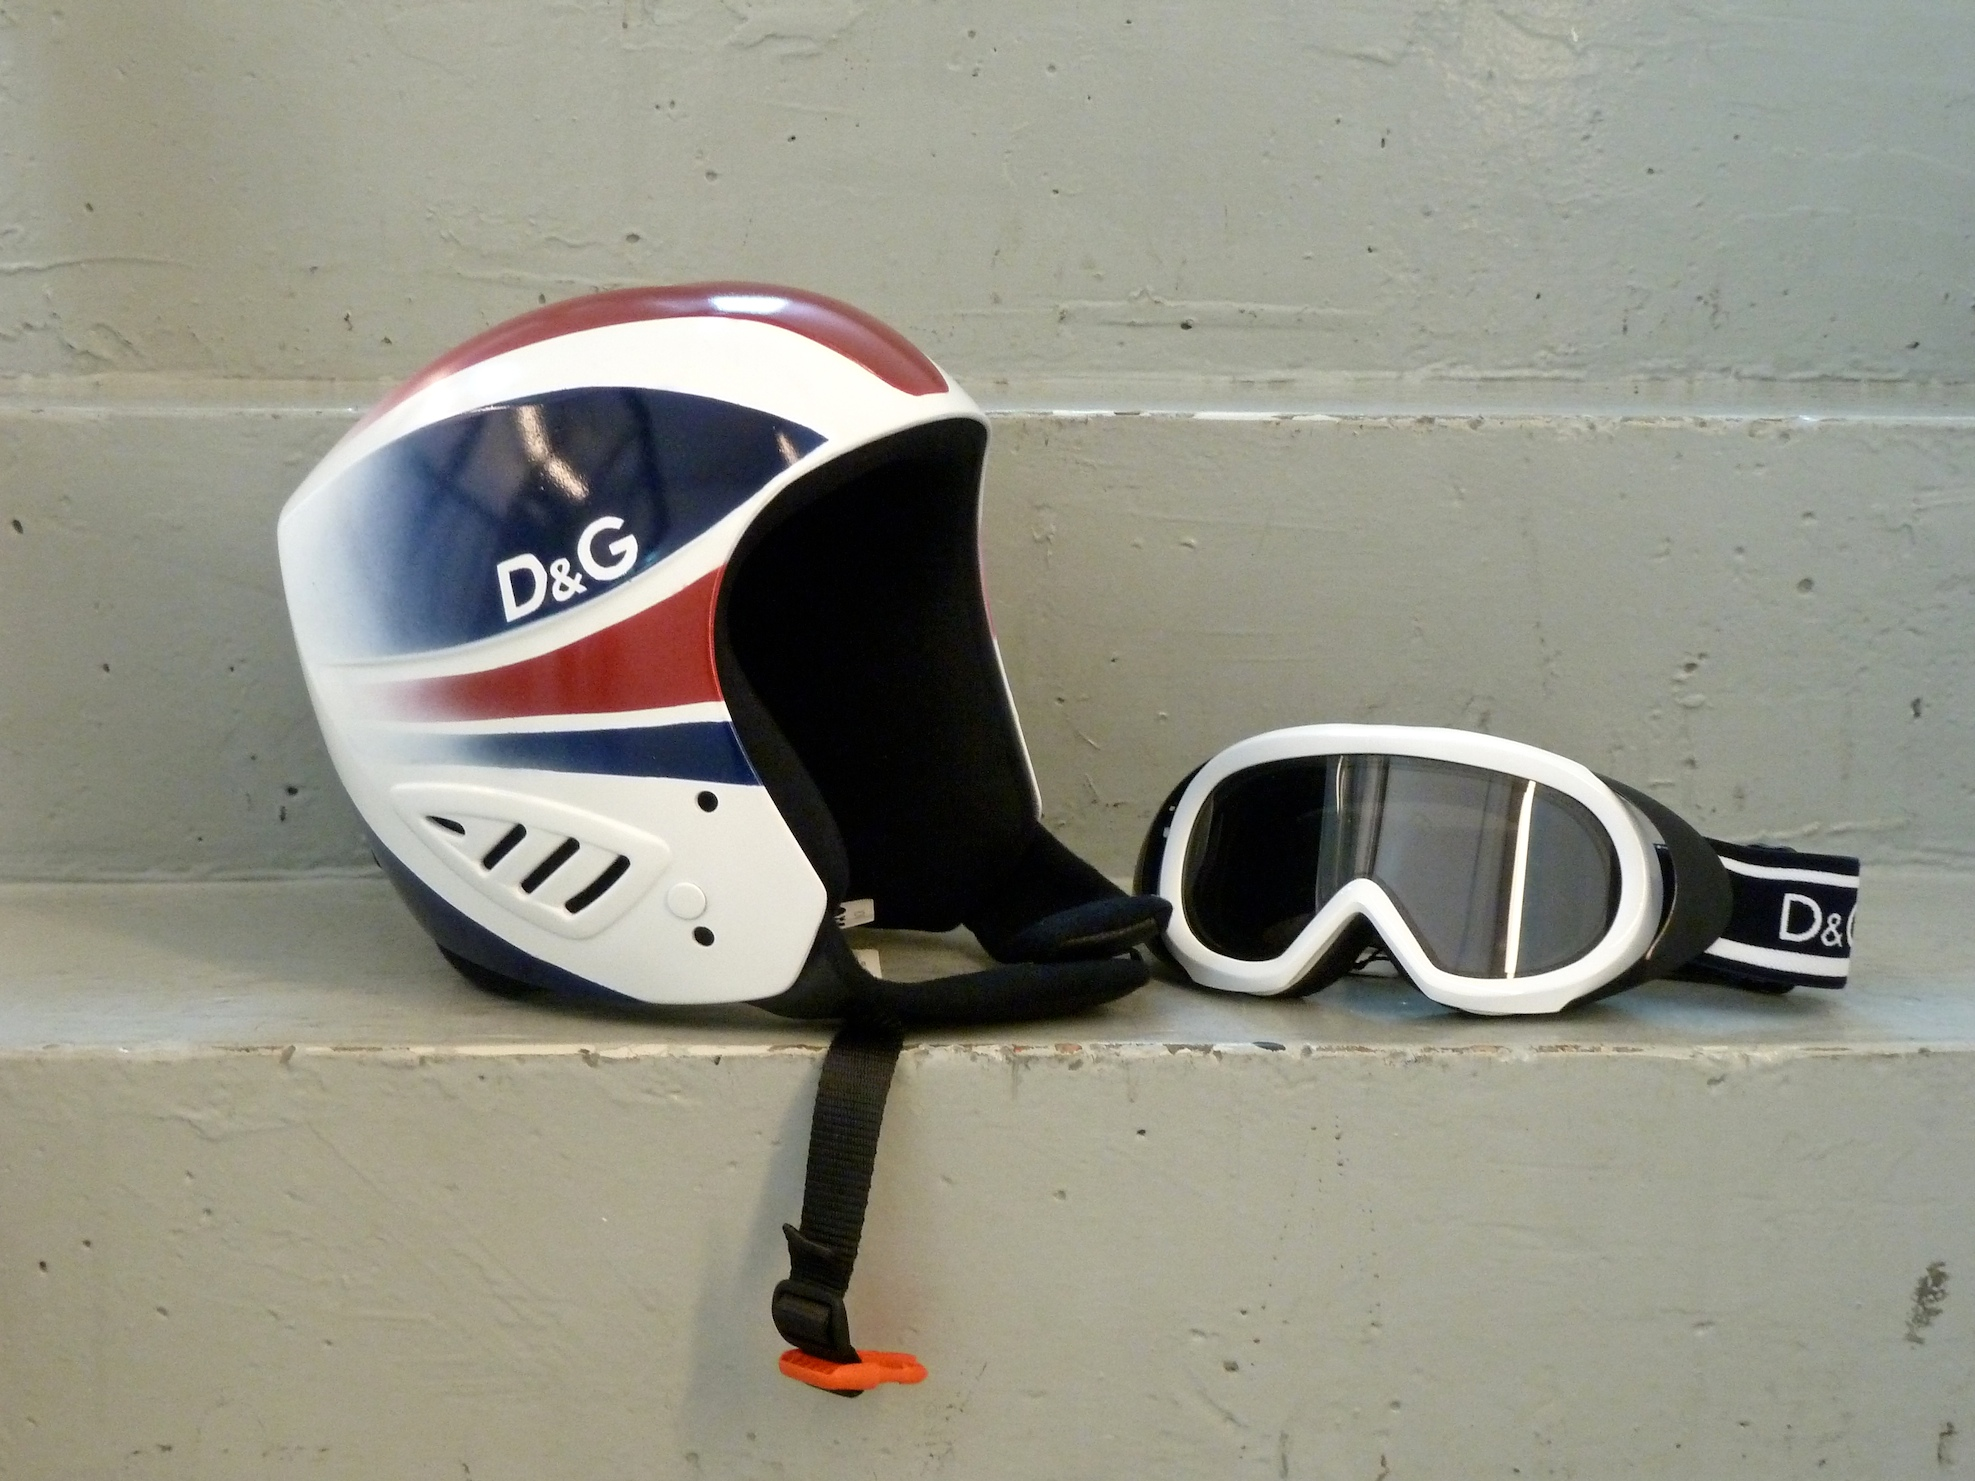 D&G Junior Ski helmet and goggles for kids winter 2011